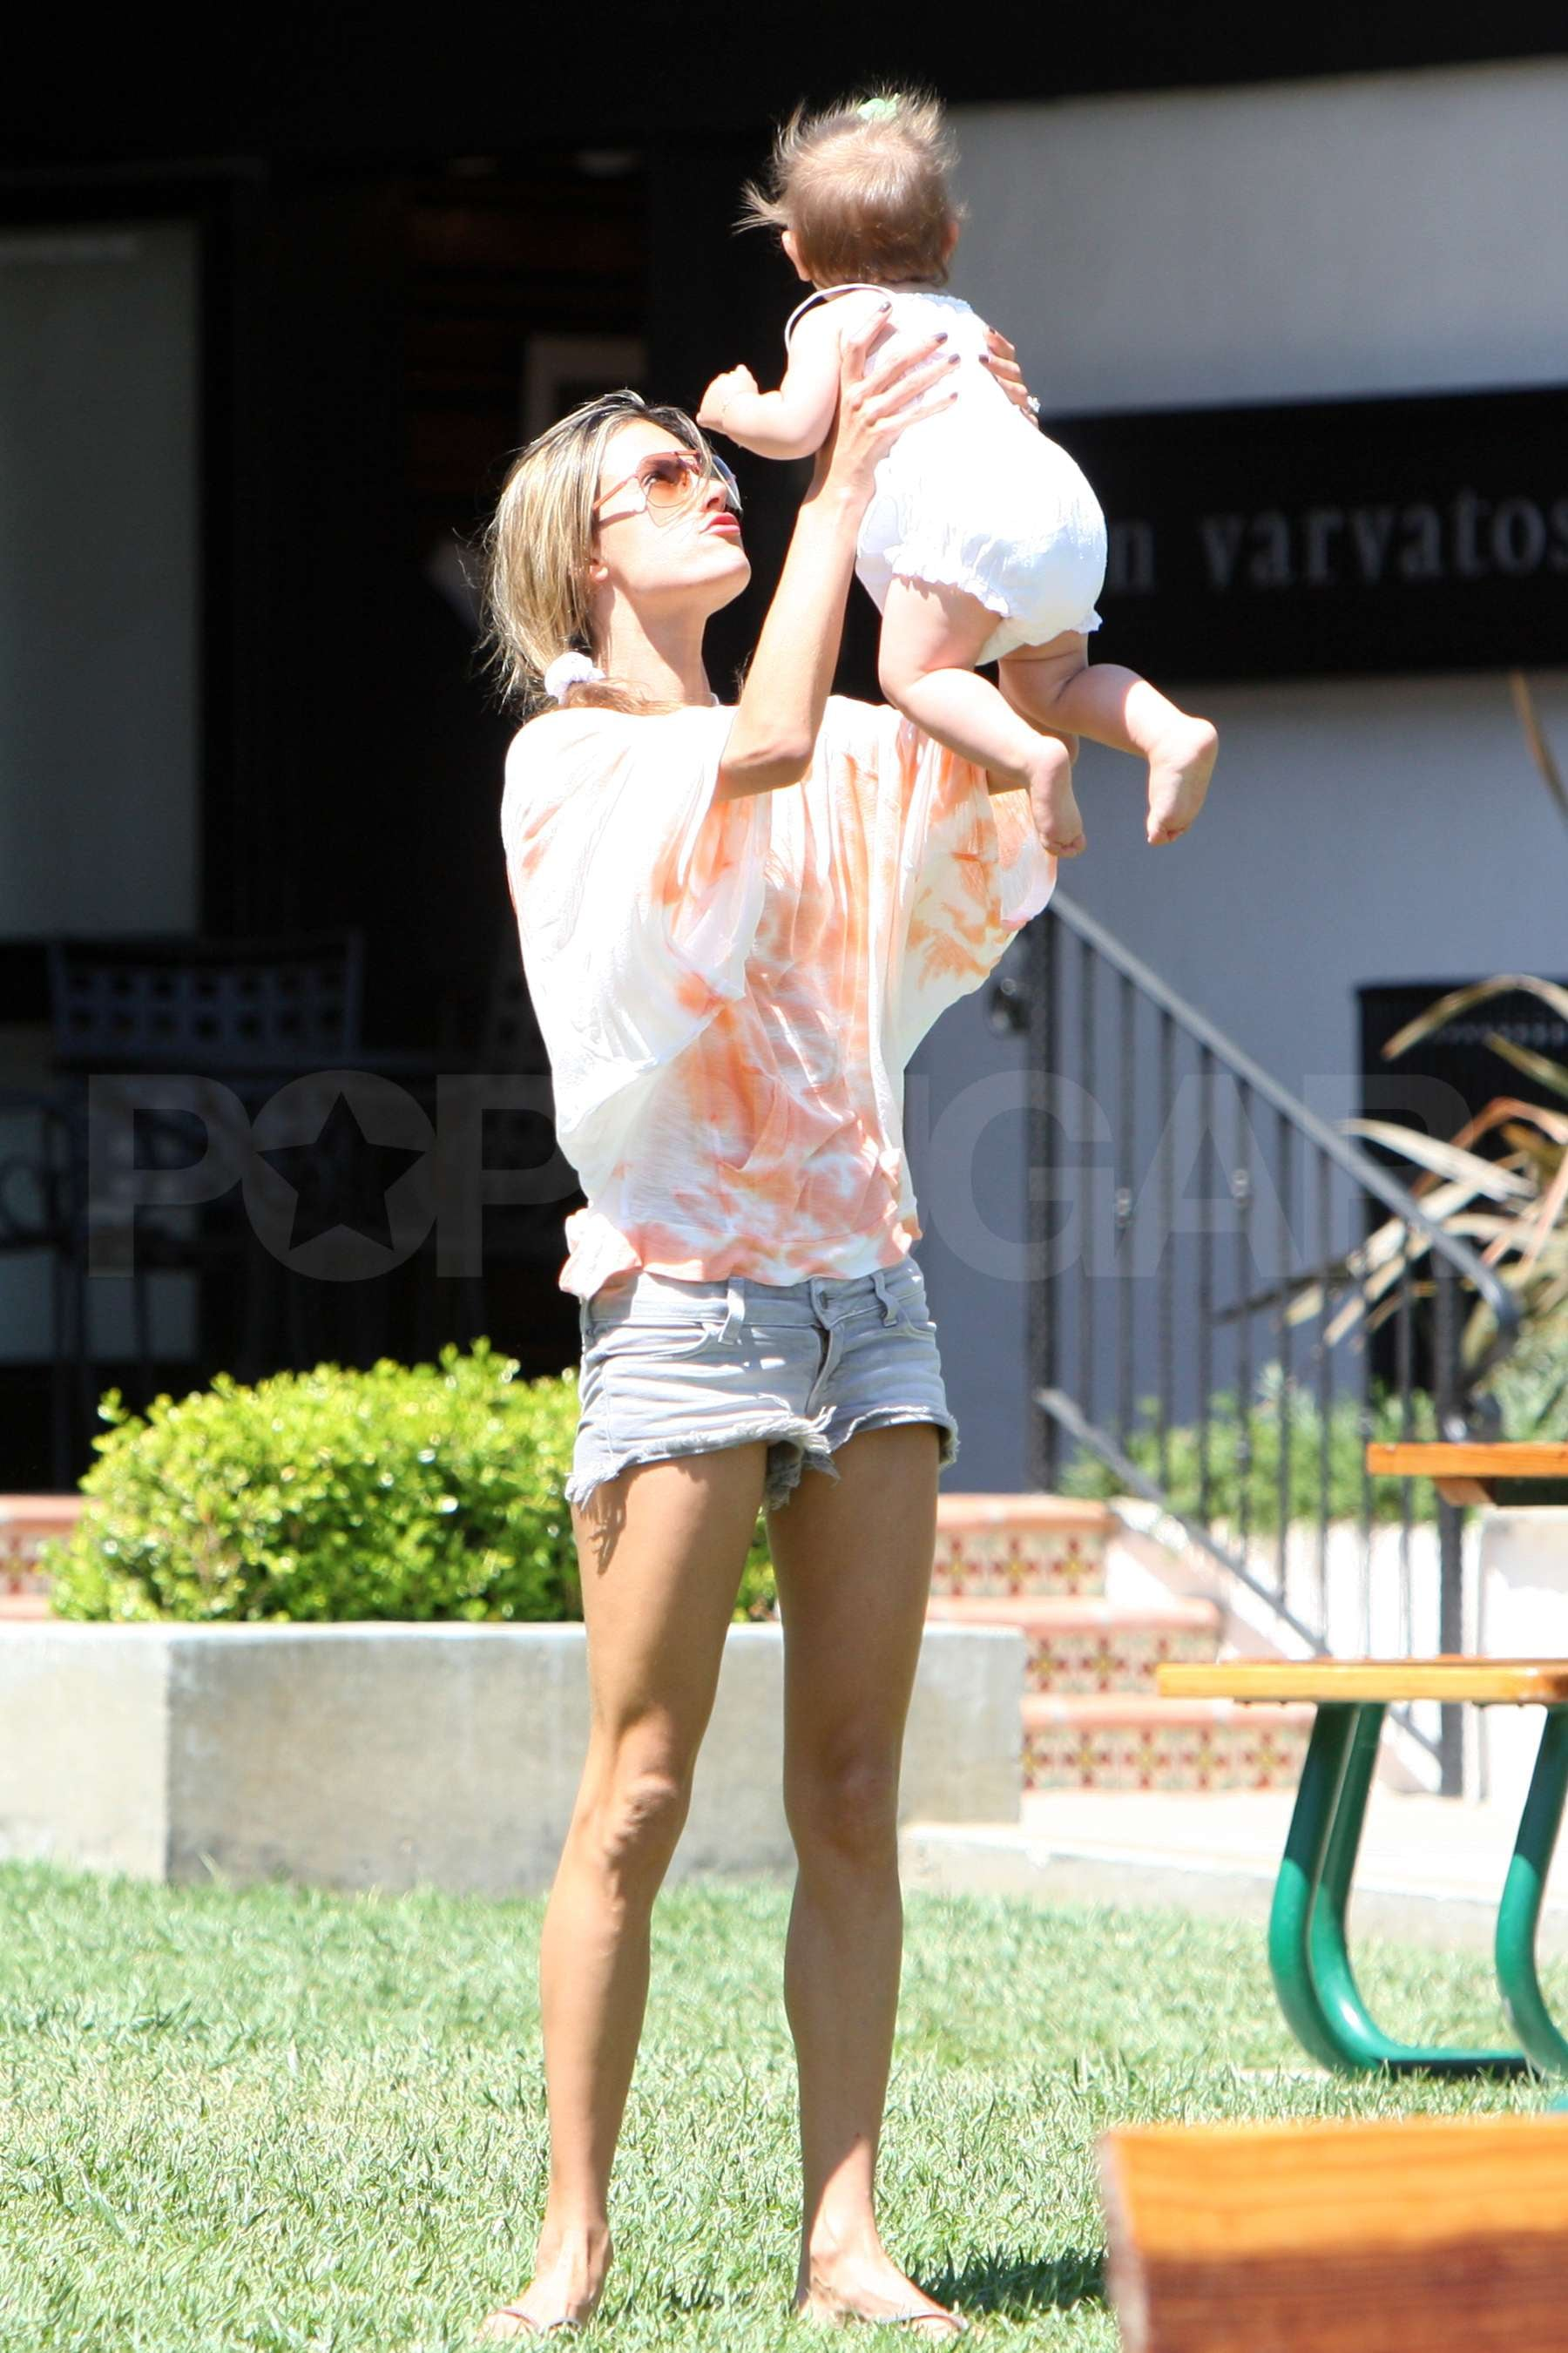 PopsugarCelebrityCelebrity KidsAlessandra Ambrosio Bikini Photos in Malibu With Her DaughterAlessandra Ambrosio Hits The Beach With Her Bikini and BabyJuly 17, 2009 by Molly Goodson0 SharesChat with us on Facebook Messenger. Learn what's trending across POPSUGAR.Alessandra Ambrosio looked absolutely amazing in her teeny bikini on the beach with her 11-month-old daughter Anja in Malibu yesterday. Too cute in their hats. We first saw Alessandra's post-baby bikini body back in January, and the leggy model looks fantastic after her first year as a mom. This week Karolina Kurkova announced her pregnancy making her the fourth current or former Victoria's Secret Angel who is expecting at the moment! That is a generation of celebrity babies with some seriously gorgeous genes. To see lots more of Alessanda on the beach and in her bikini just .Image Source: Splash News Online Join the conversationChat with us on Facebook Messenger. Learn what's trending across POPSUGAR.Anja MazurJamie MazurCelebrity Kids2009 SummerAles - 웹